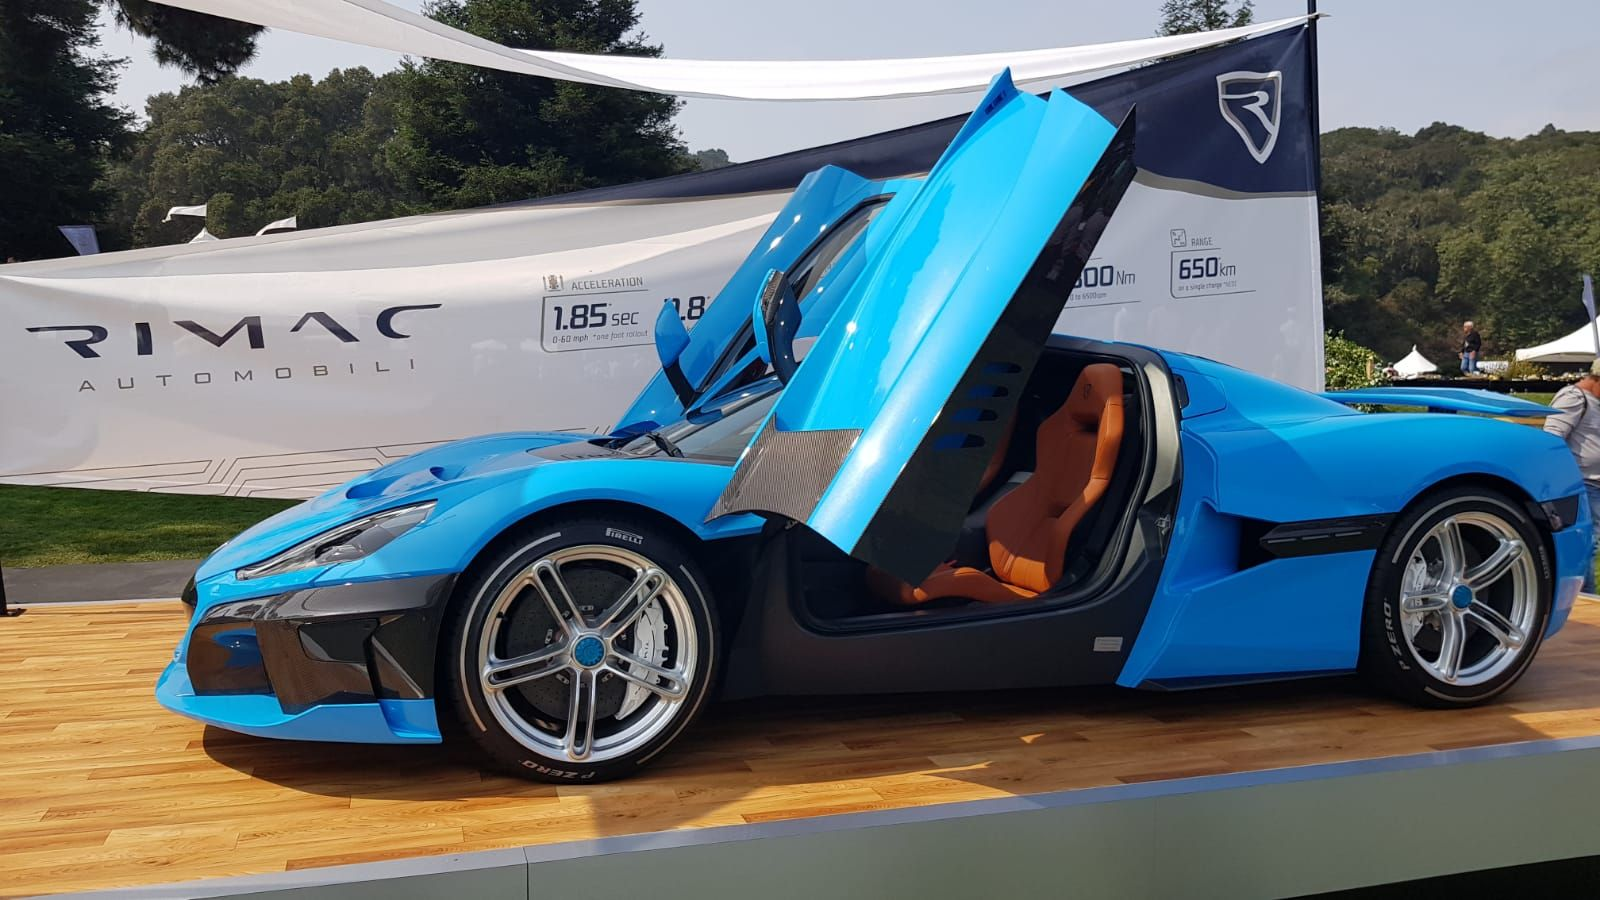 Rimac Concept 2 Fastest Electric Car At The Quail 0 60 In 1 8 Seconds